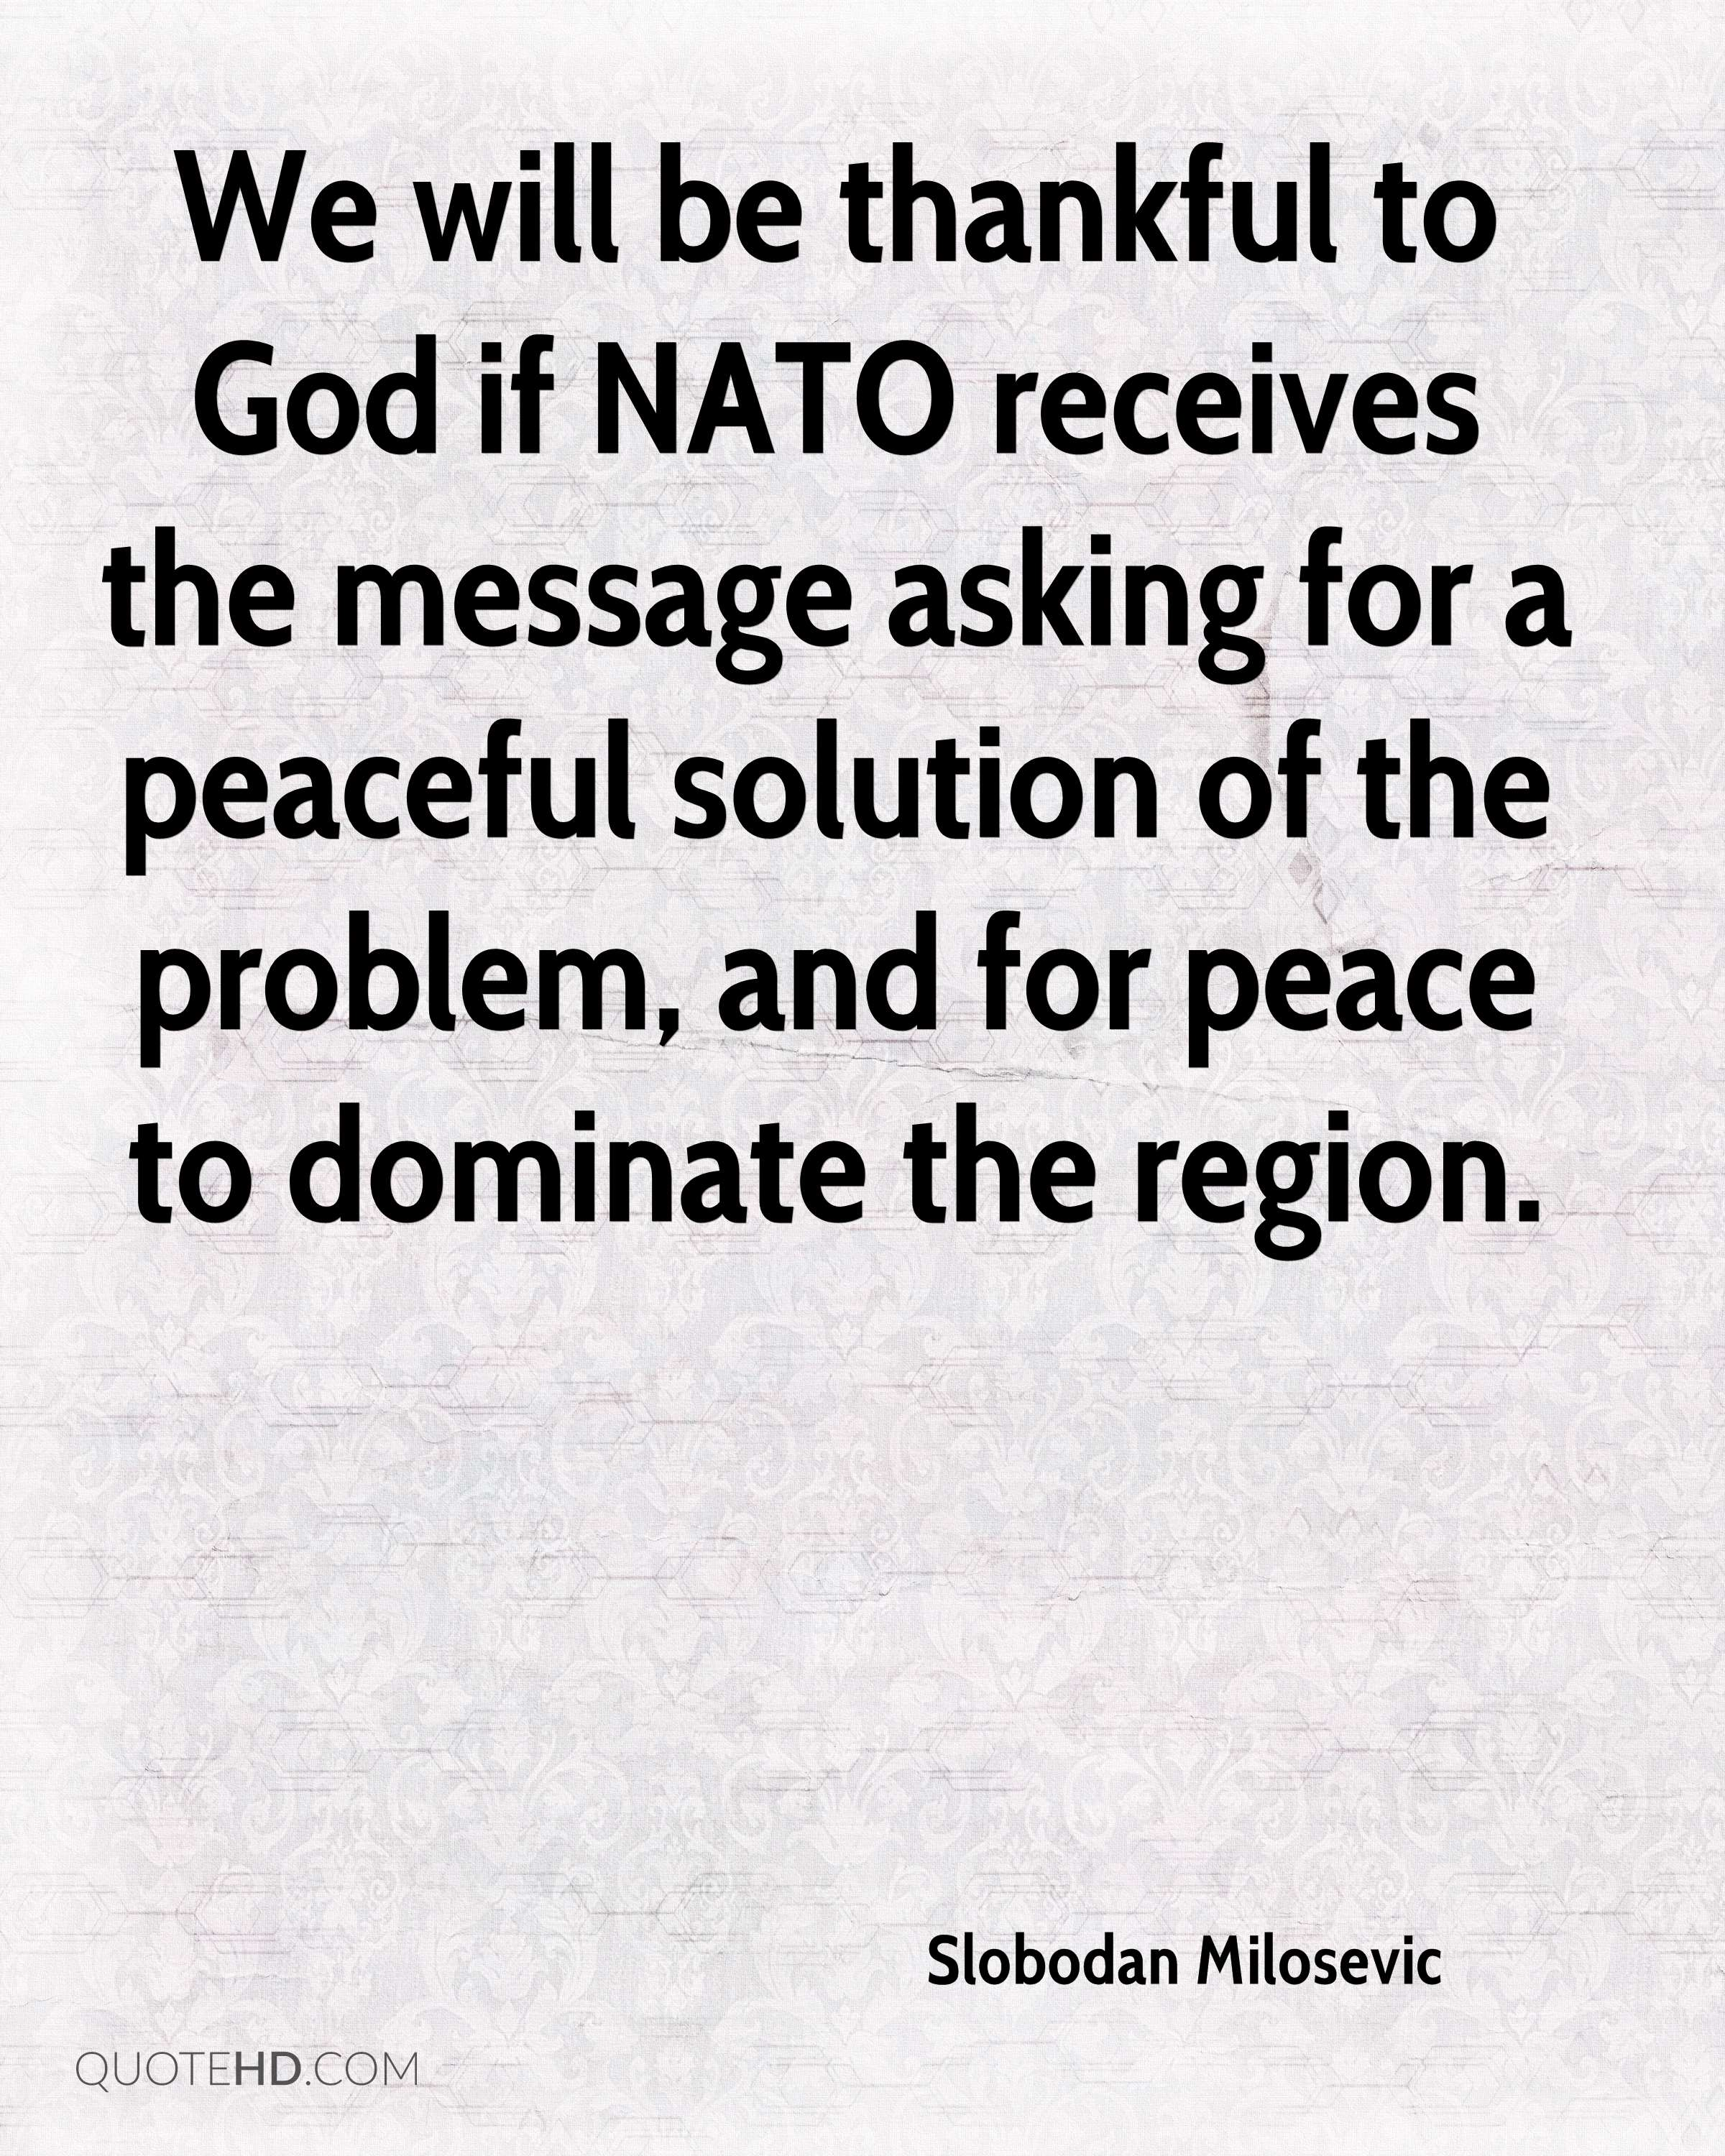 We will be thankful to God if NATO receives the message asking for a peaceful solution of the problem, and for peace to dominate the region.